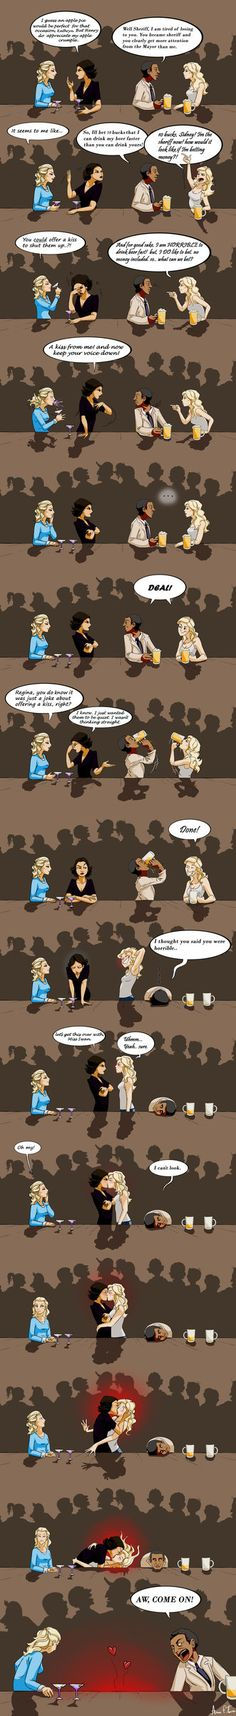 Swanqueen a SQ comic it took me 5 days to make. jeez. but it was REALLY fun to make (I do not own any of the chars, just me having some fun) uh and it is also based on a real story of mine XD just ...